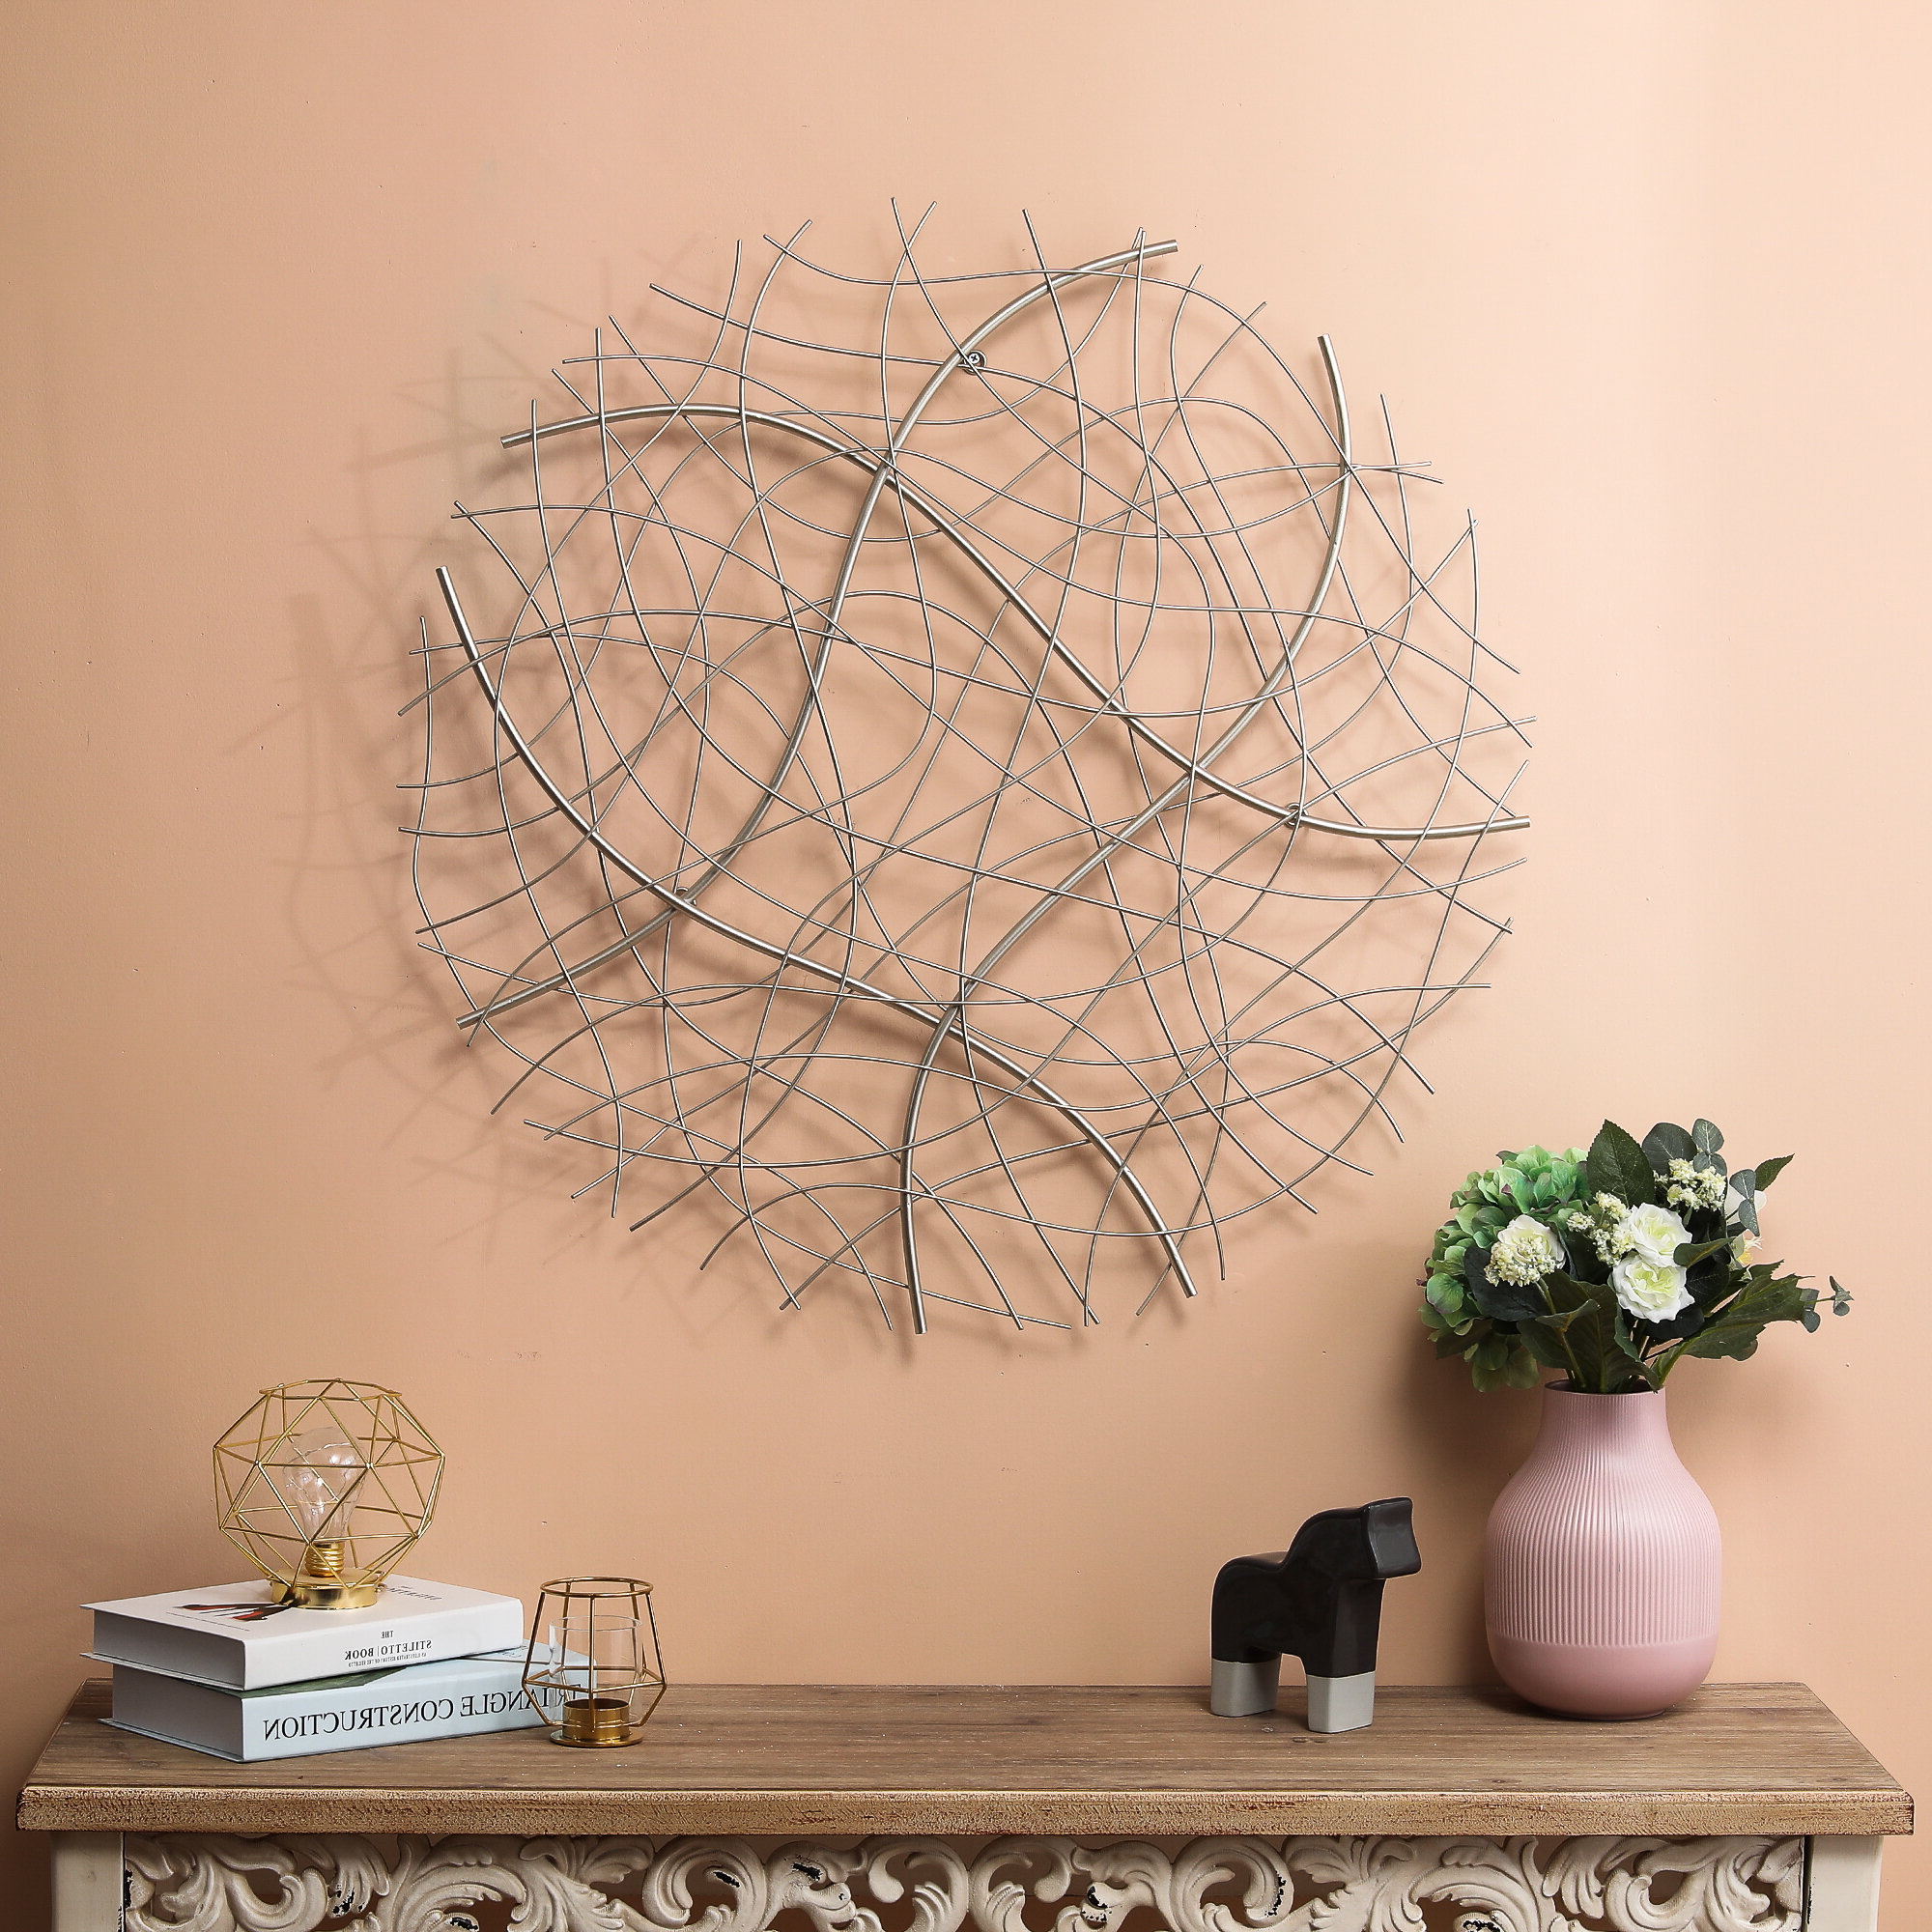 Favorite Wall Décor By Brayden Studio In Silver Brayden Studio® Wall Accents You'll Love In (View 19 of 20)